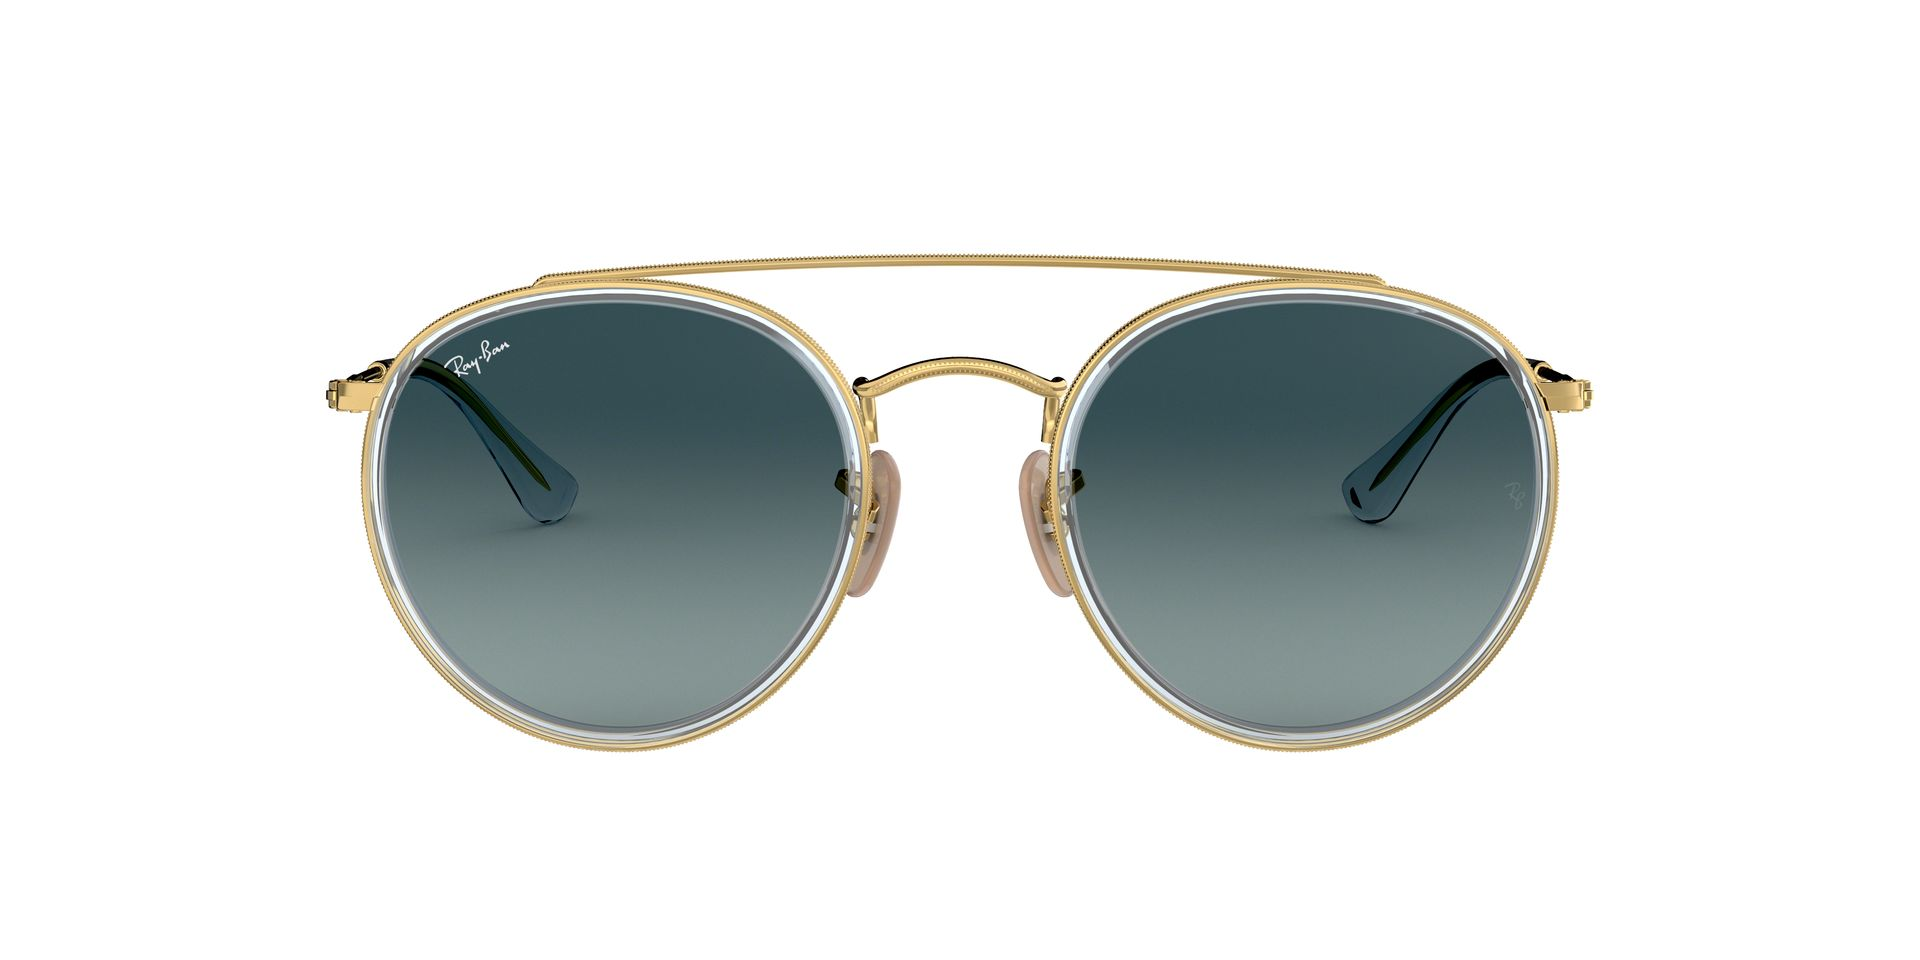 RAY-BAN ROUND DOUBLE BRIDGE RB 3647N 91233M-360